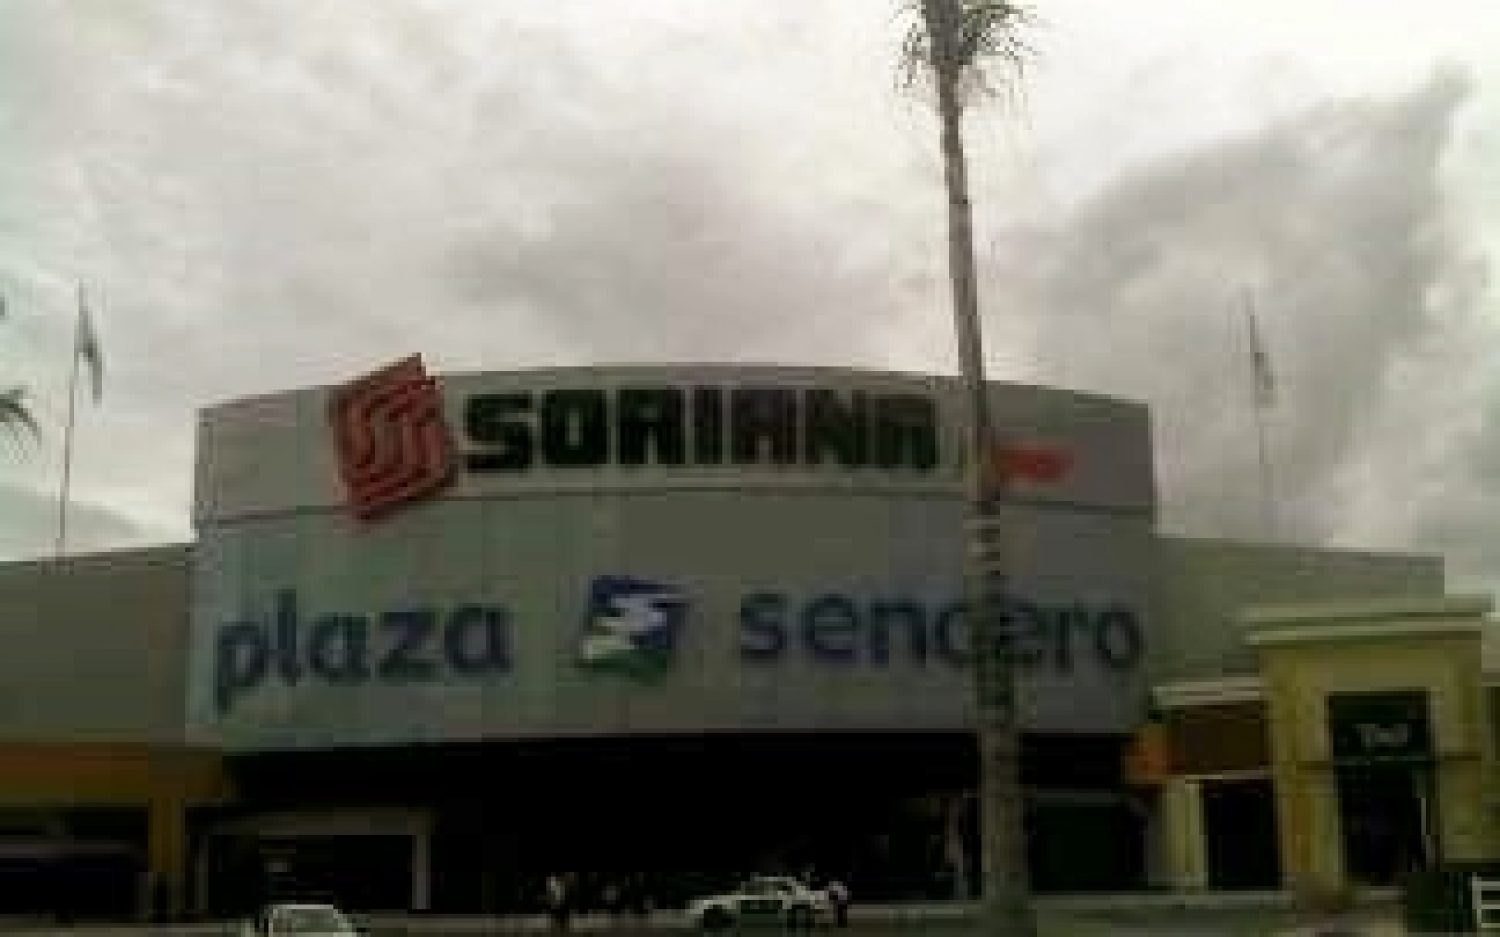 Co-Plaza Sendero Villahermosa (10)